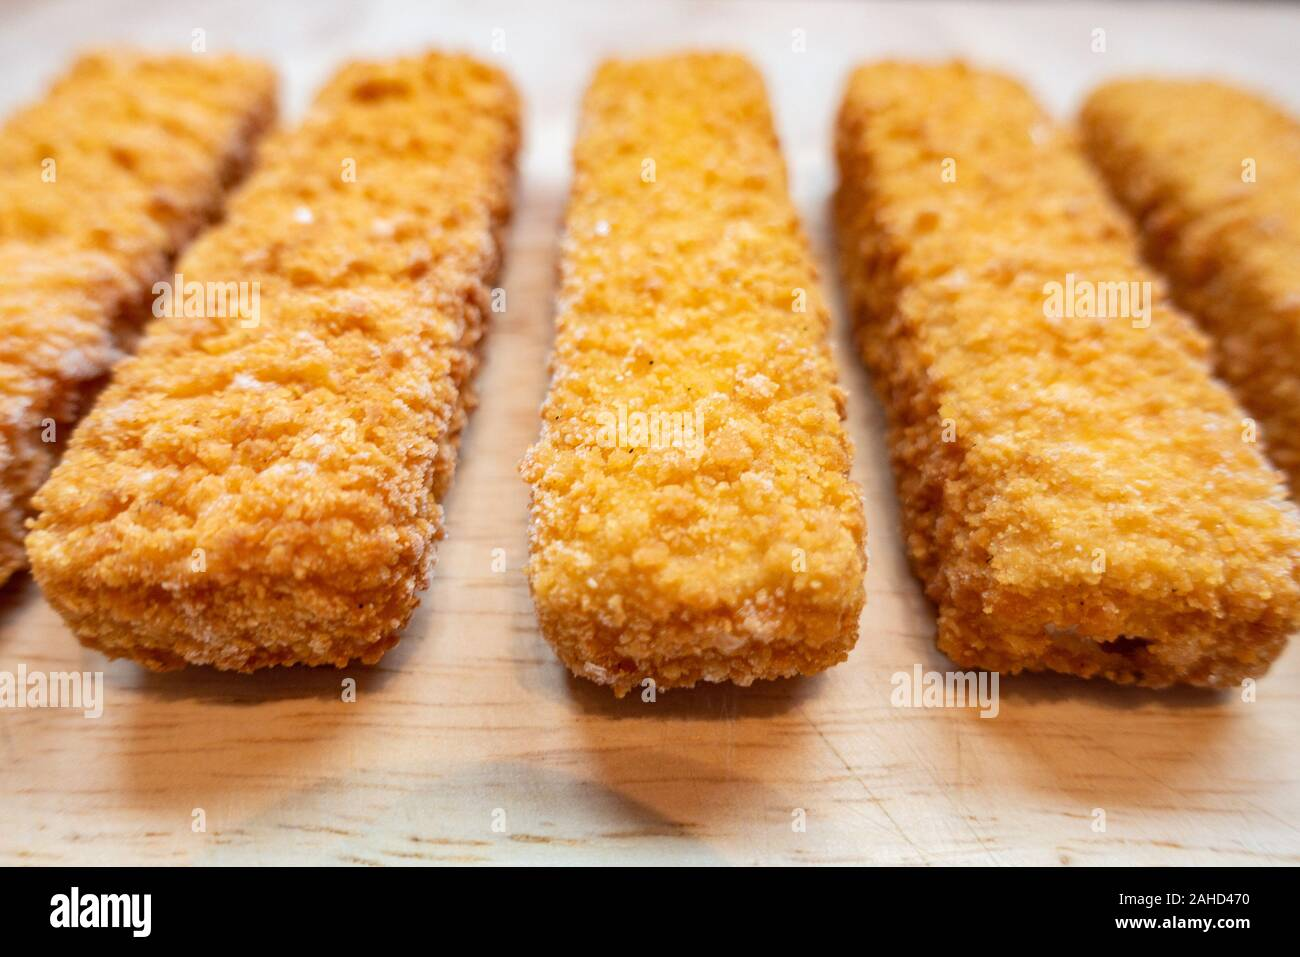 close-up-view-of-fish-fingers-on-a-wooden-chopping-board-2AHD470.jpg